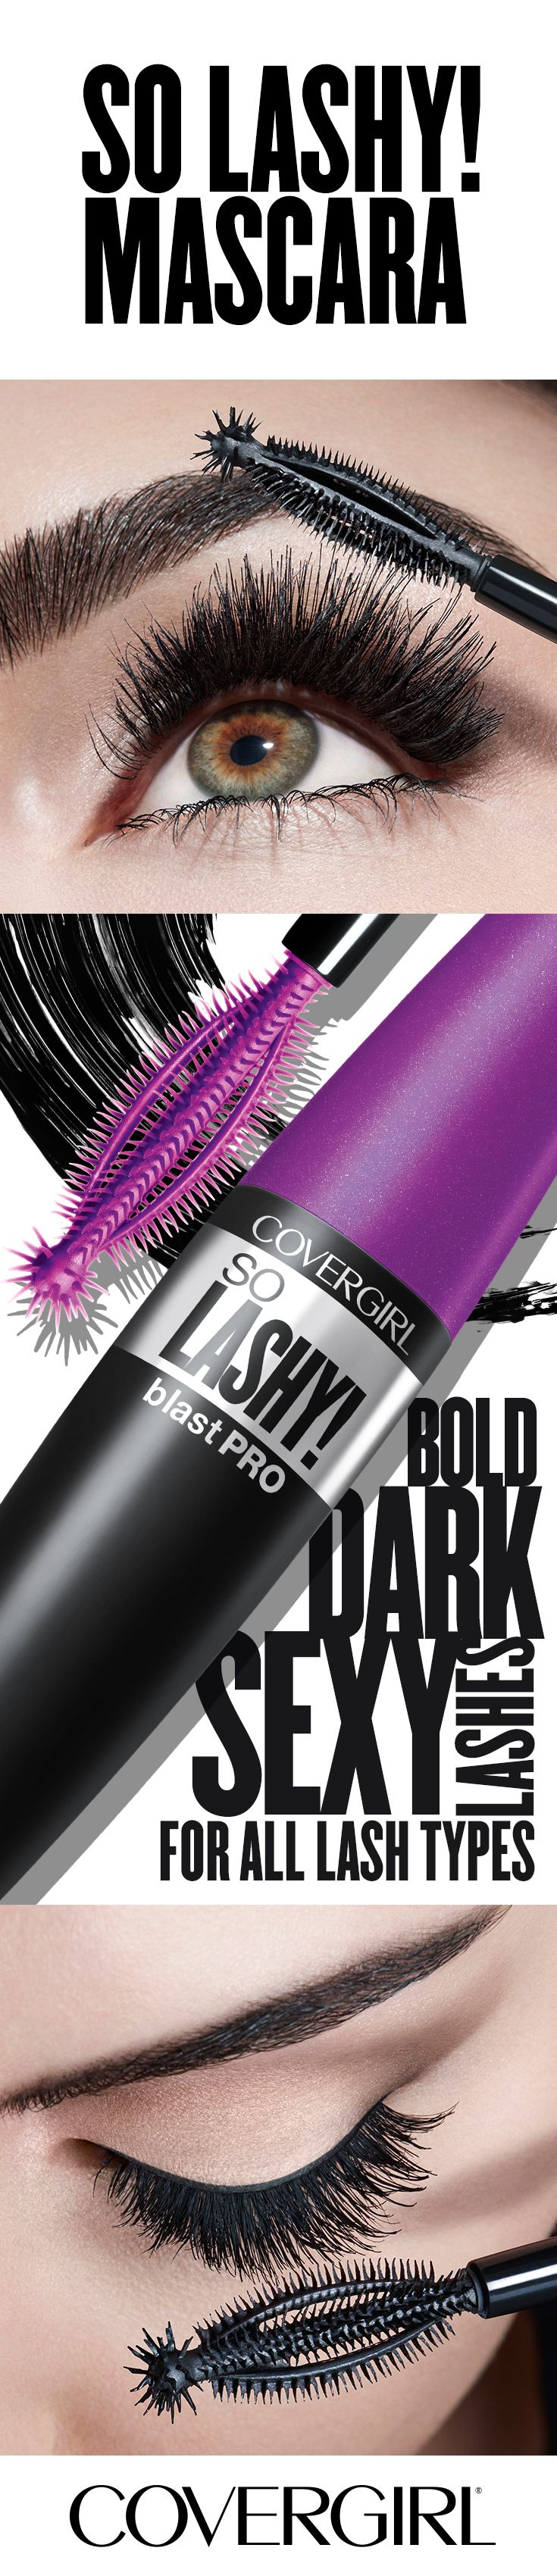 We love all types of lashes! Whether your lashes are sparse, straight, short, light or curvy, try COVERGIRL'S So Lashy! Mascara to create, dark, bold sexy lashes. You'll love our Lash Finder Tip that finds and separates even the smallest lashes. Also available in waterproof. From easy, breezy, beautiful COVERGIRL.